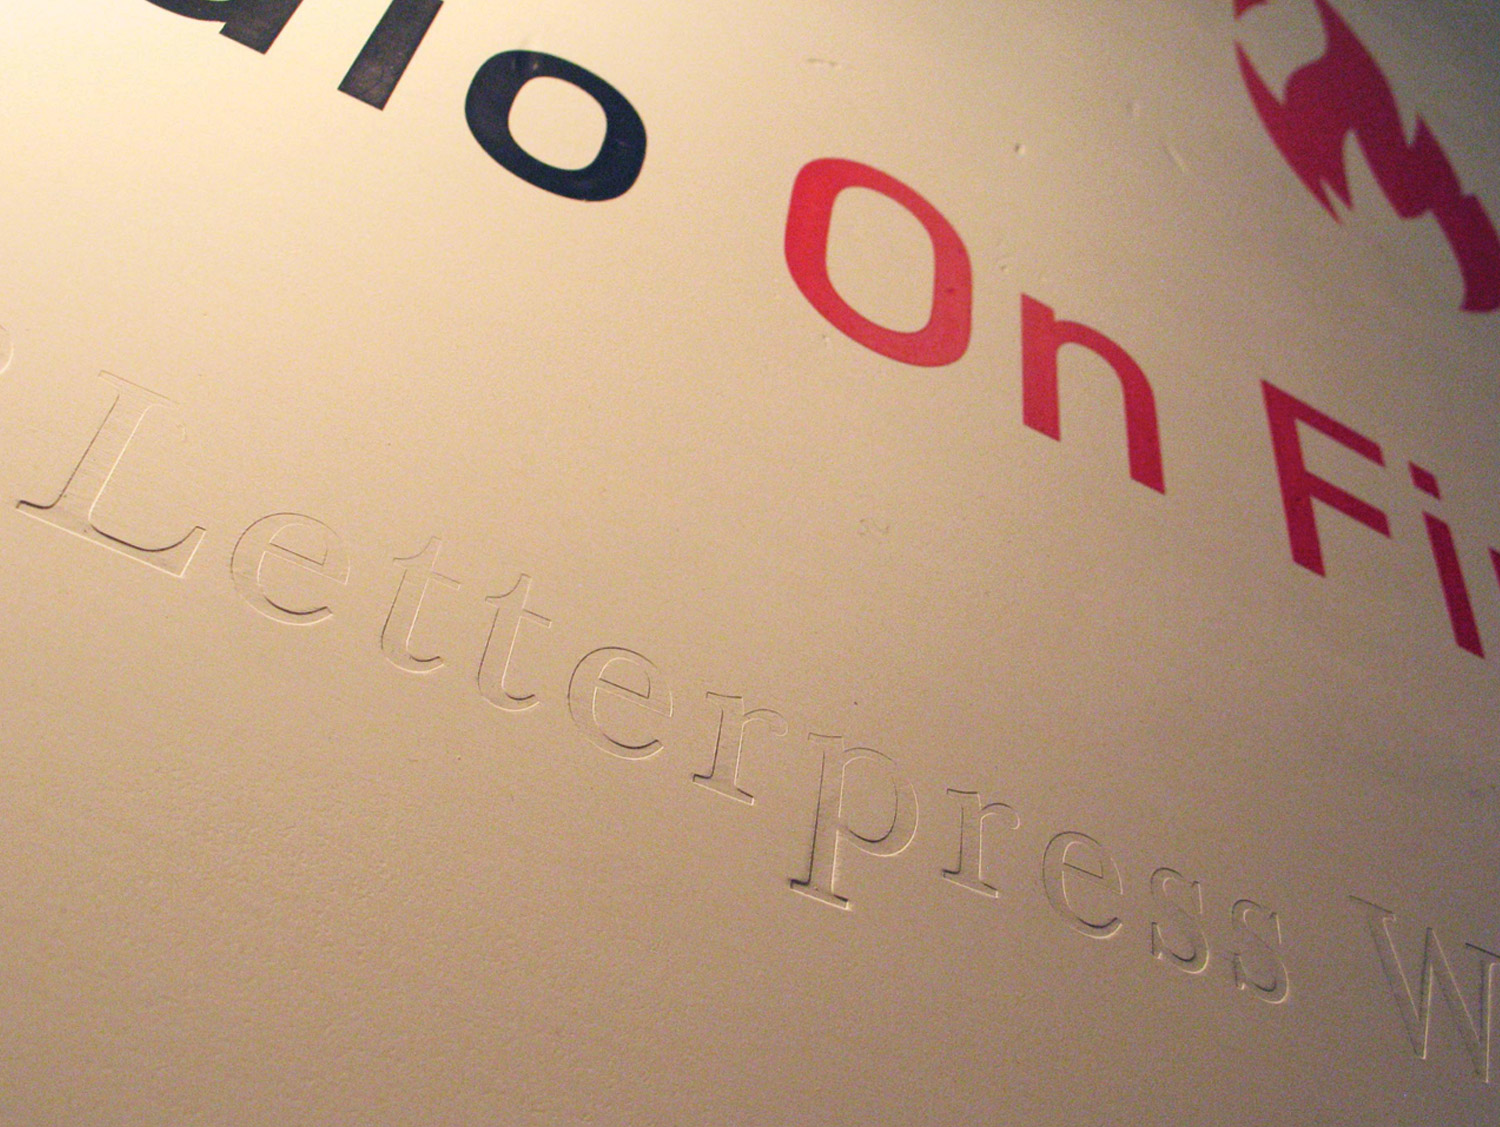 0-Studio-On-Fire-Letterpress-Sign-03.jpg